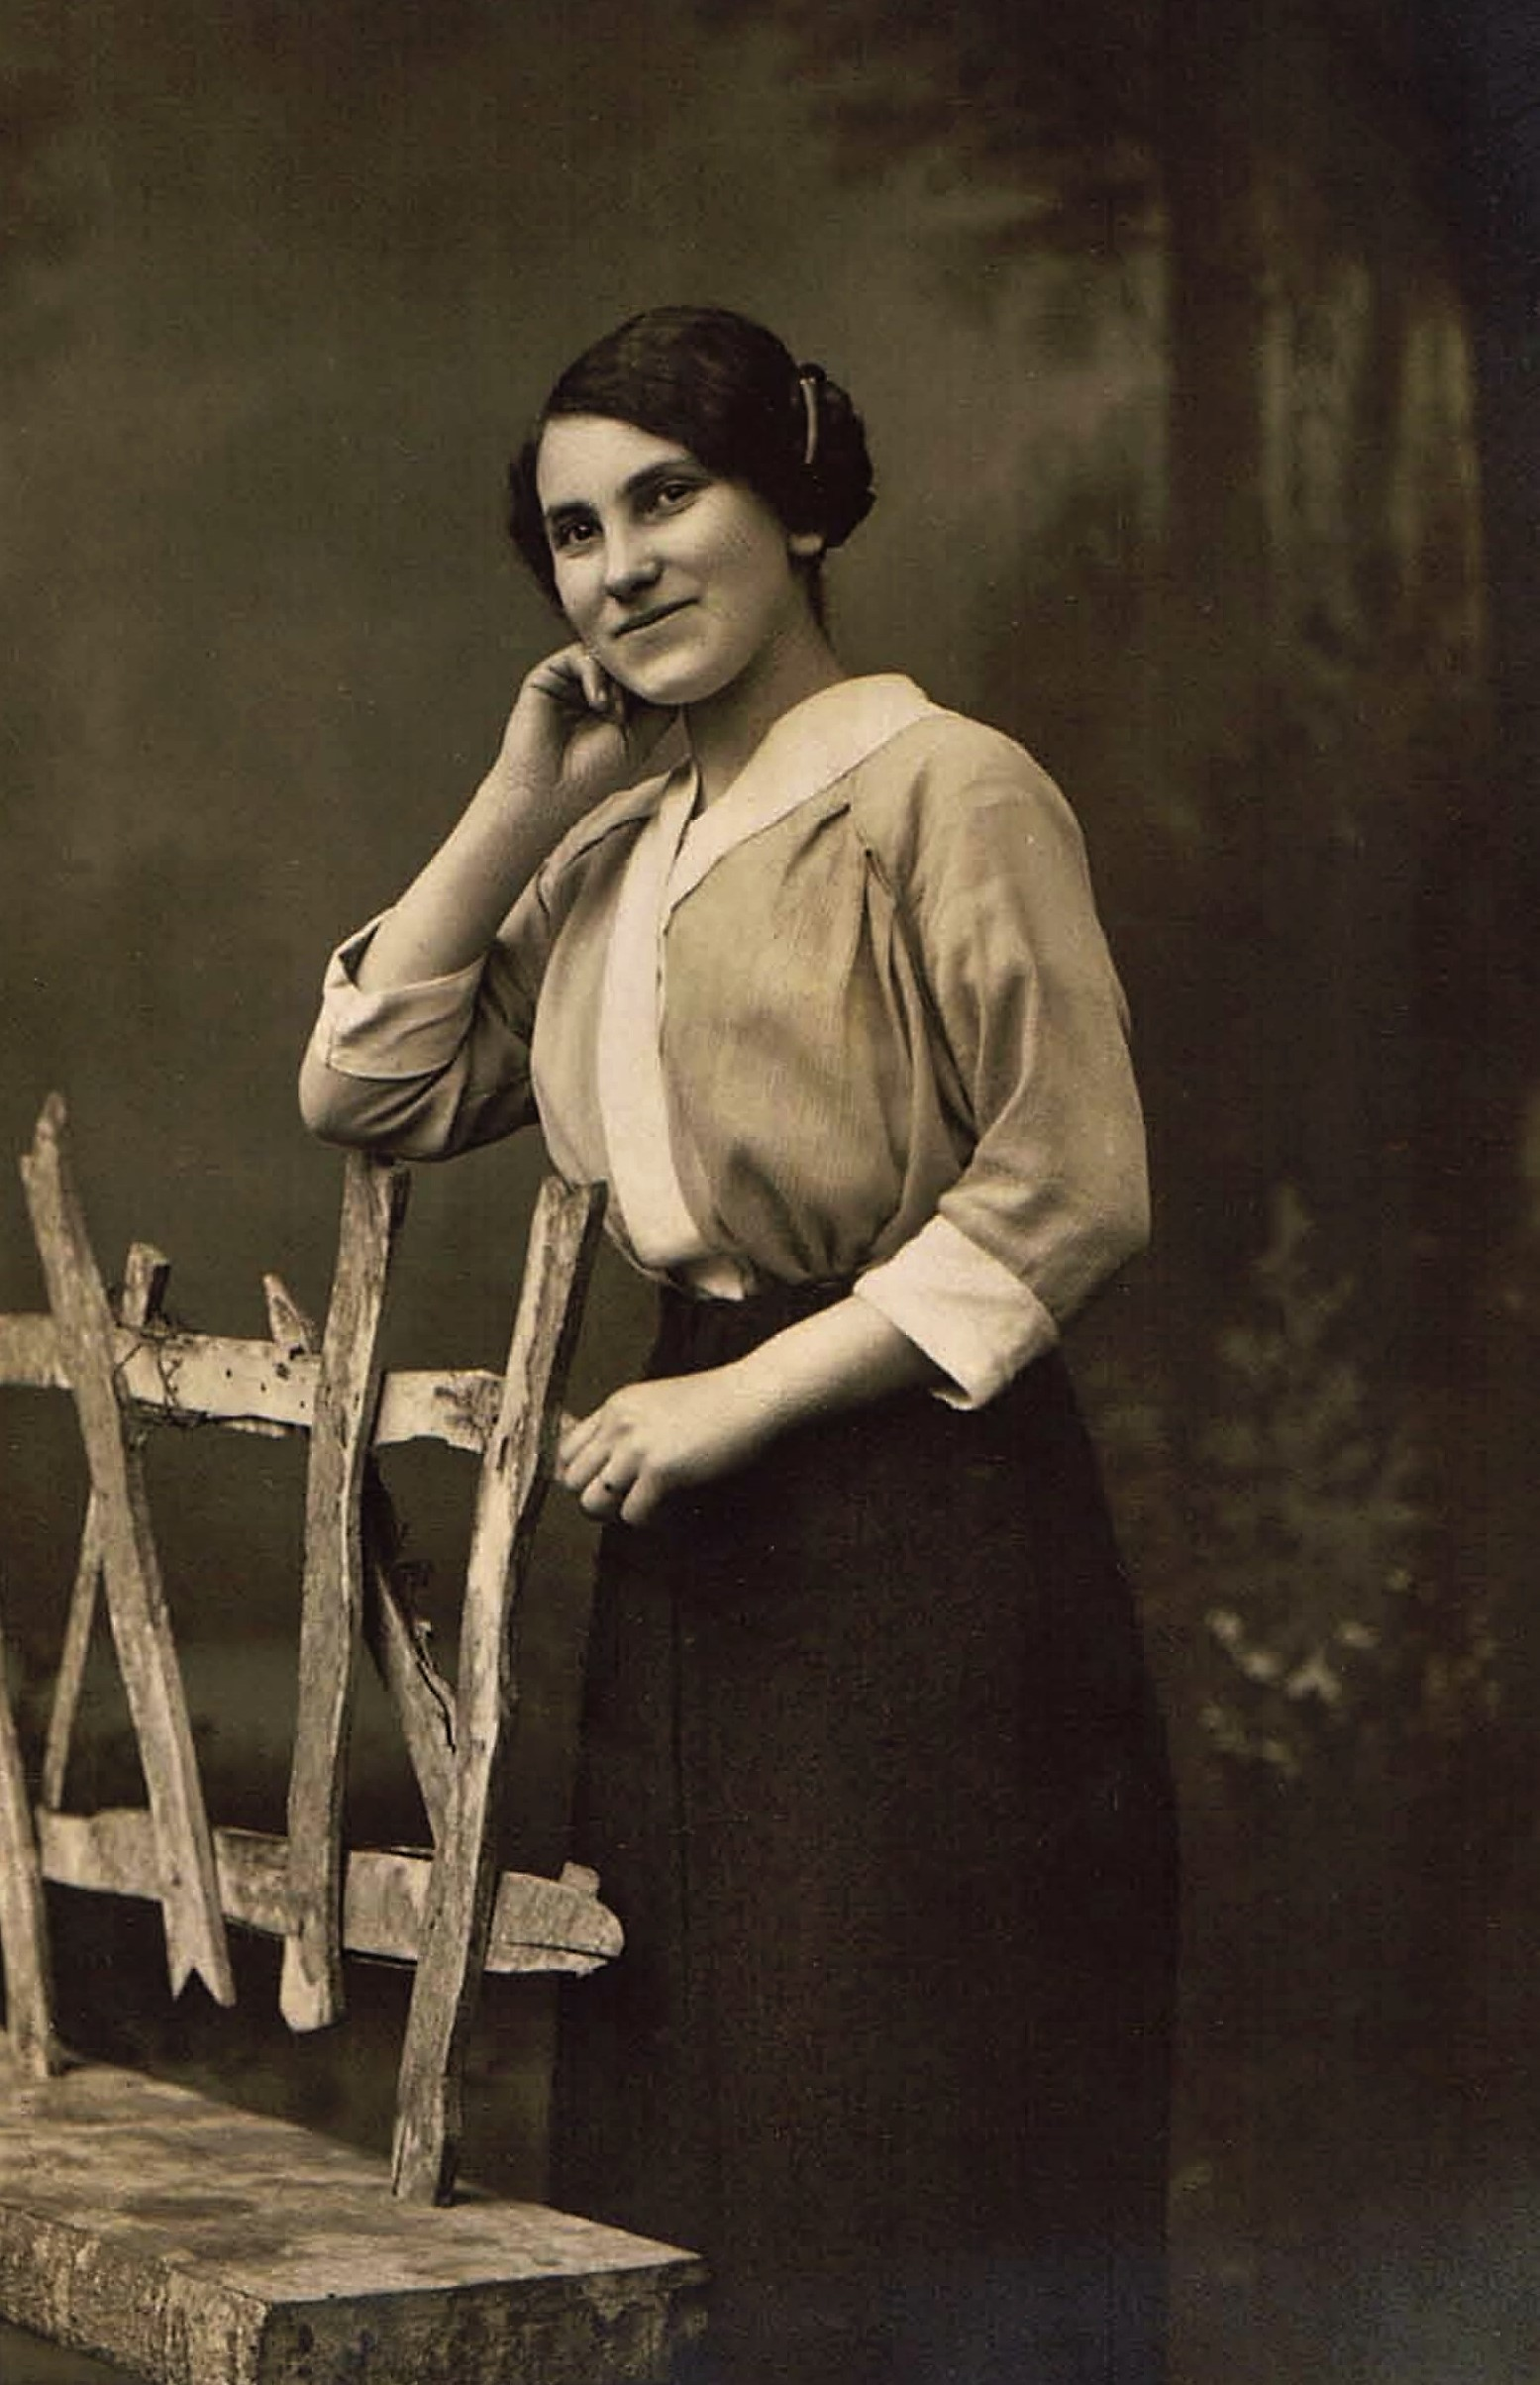 Nanette Barth in Flehingen, 1915